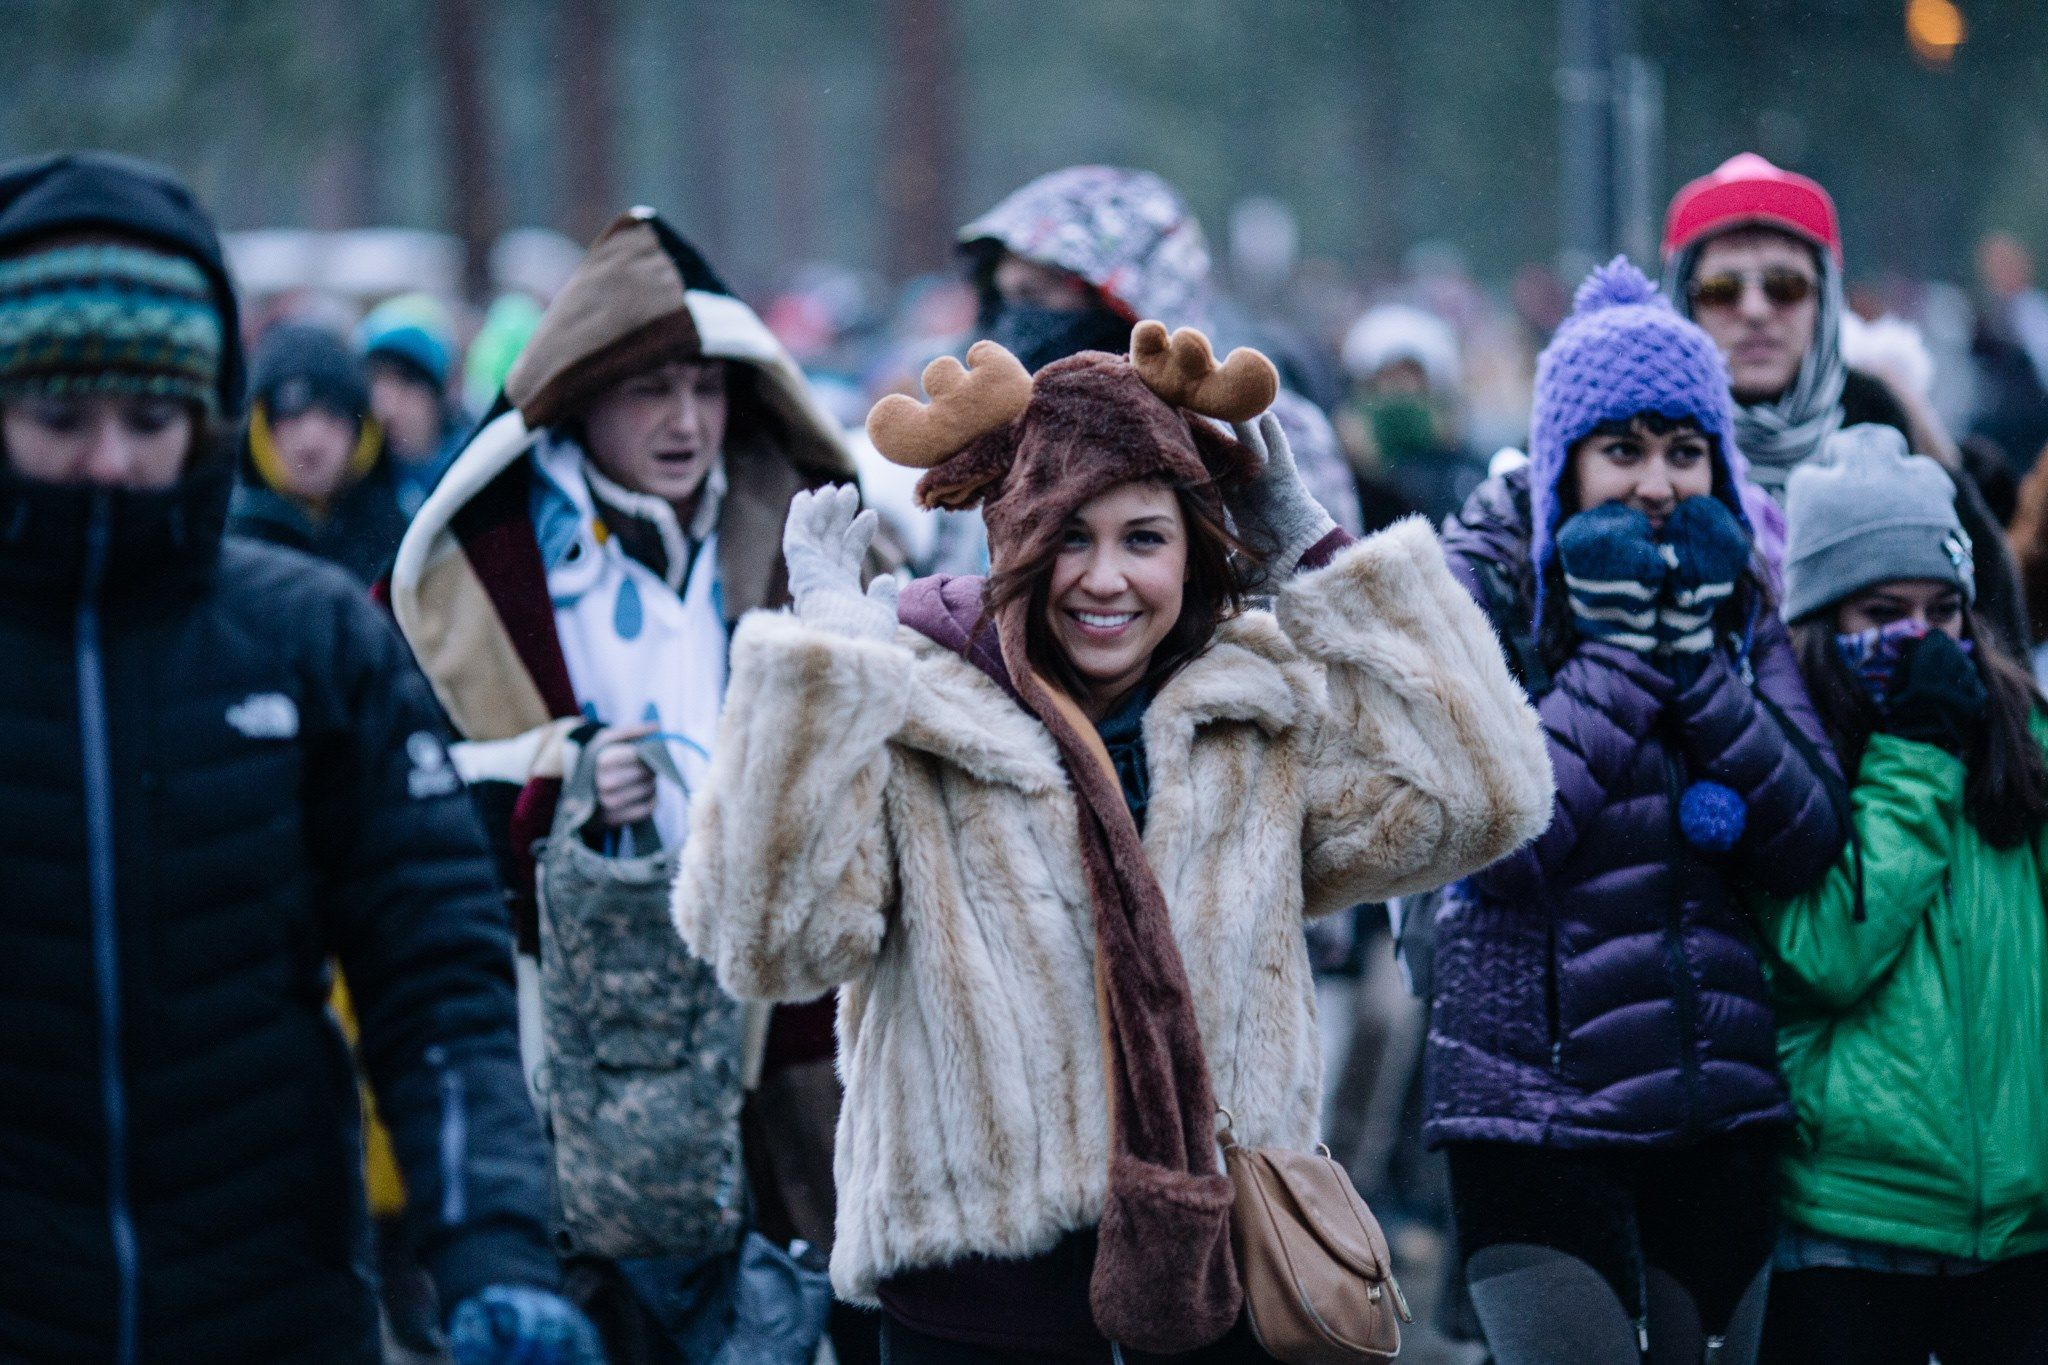 snowglobe music festival outfits - Google Search